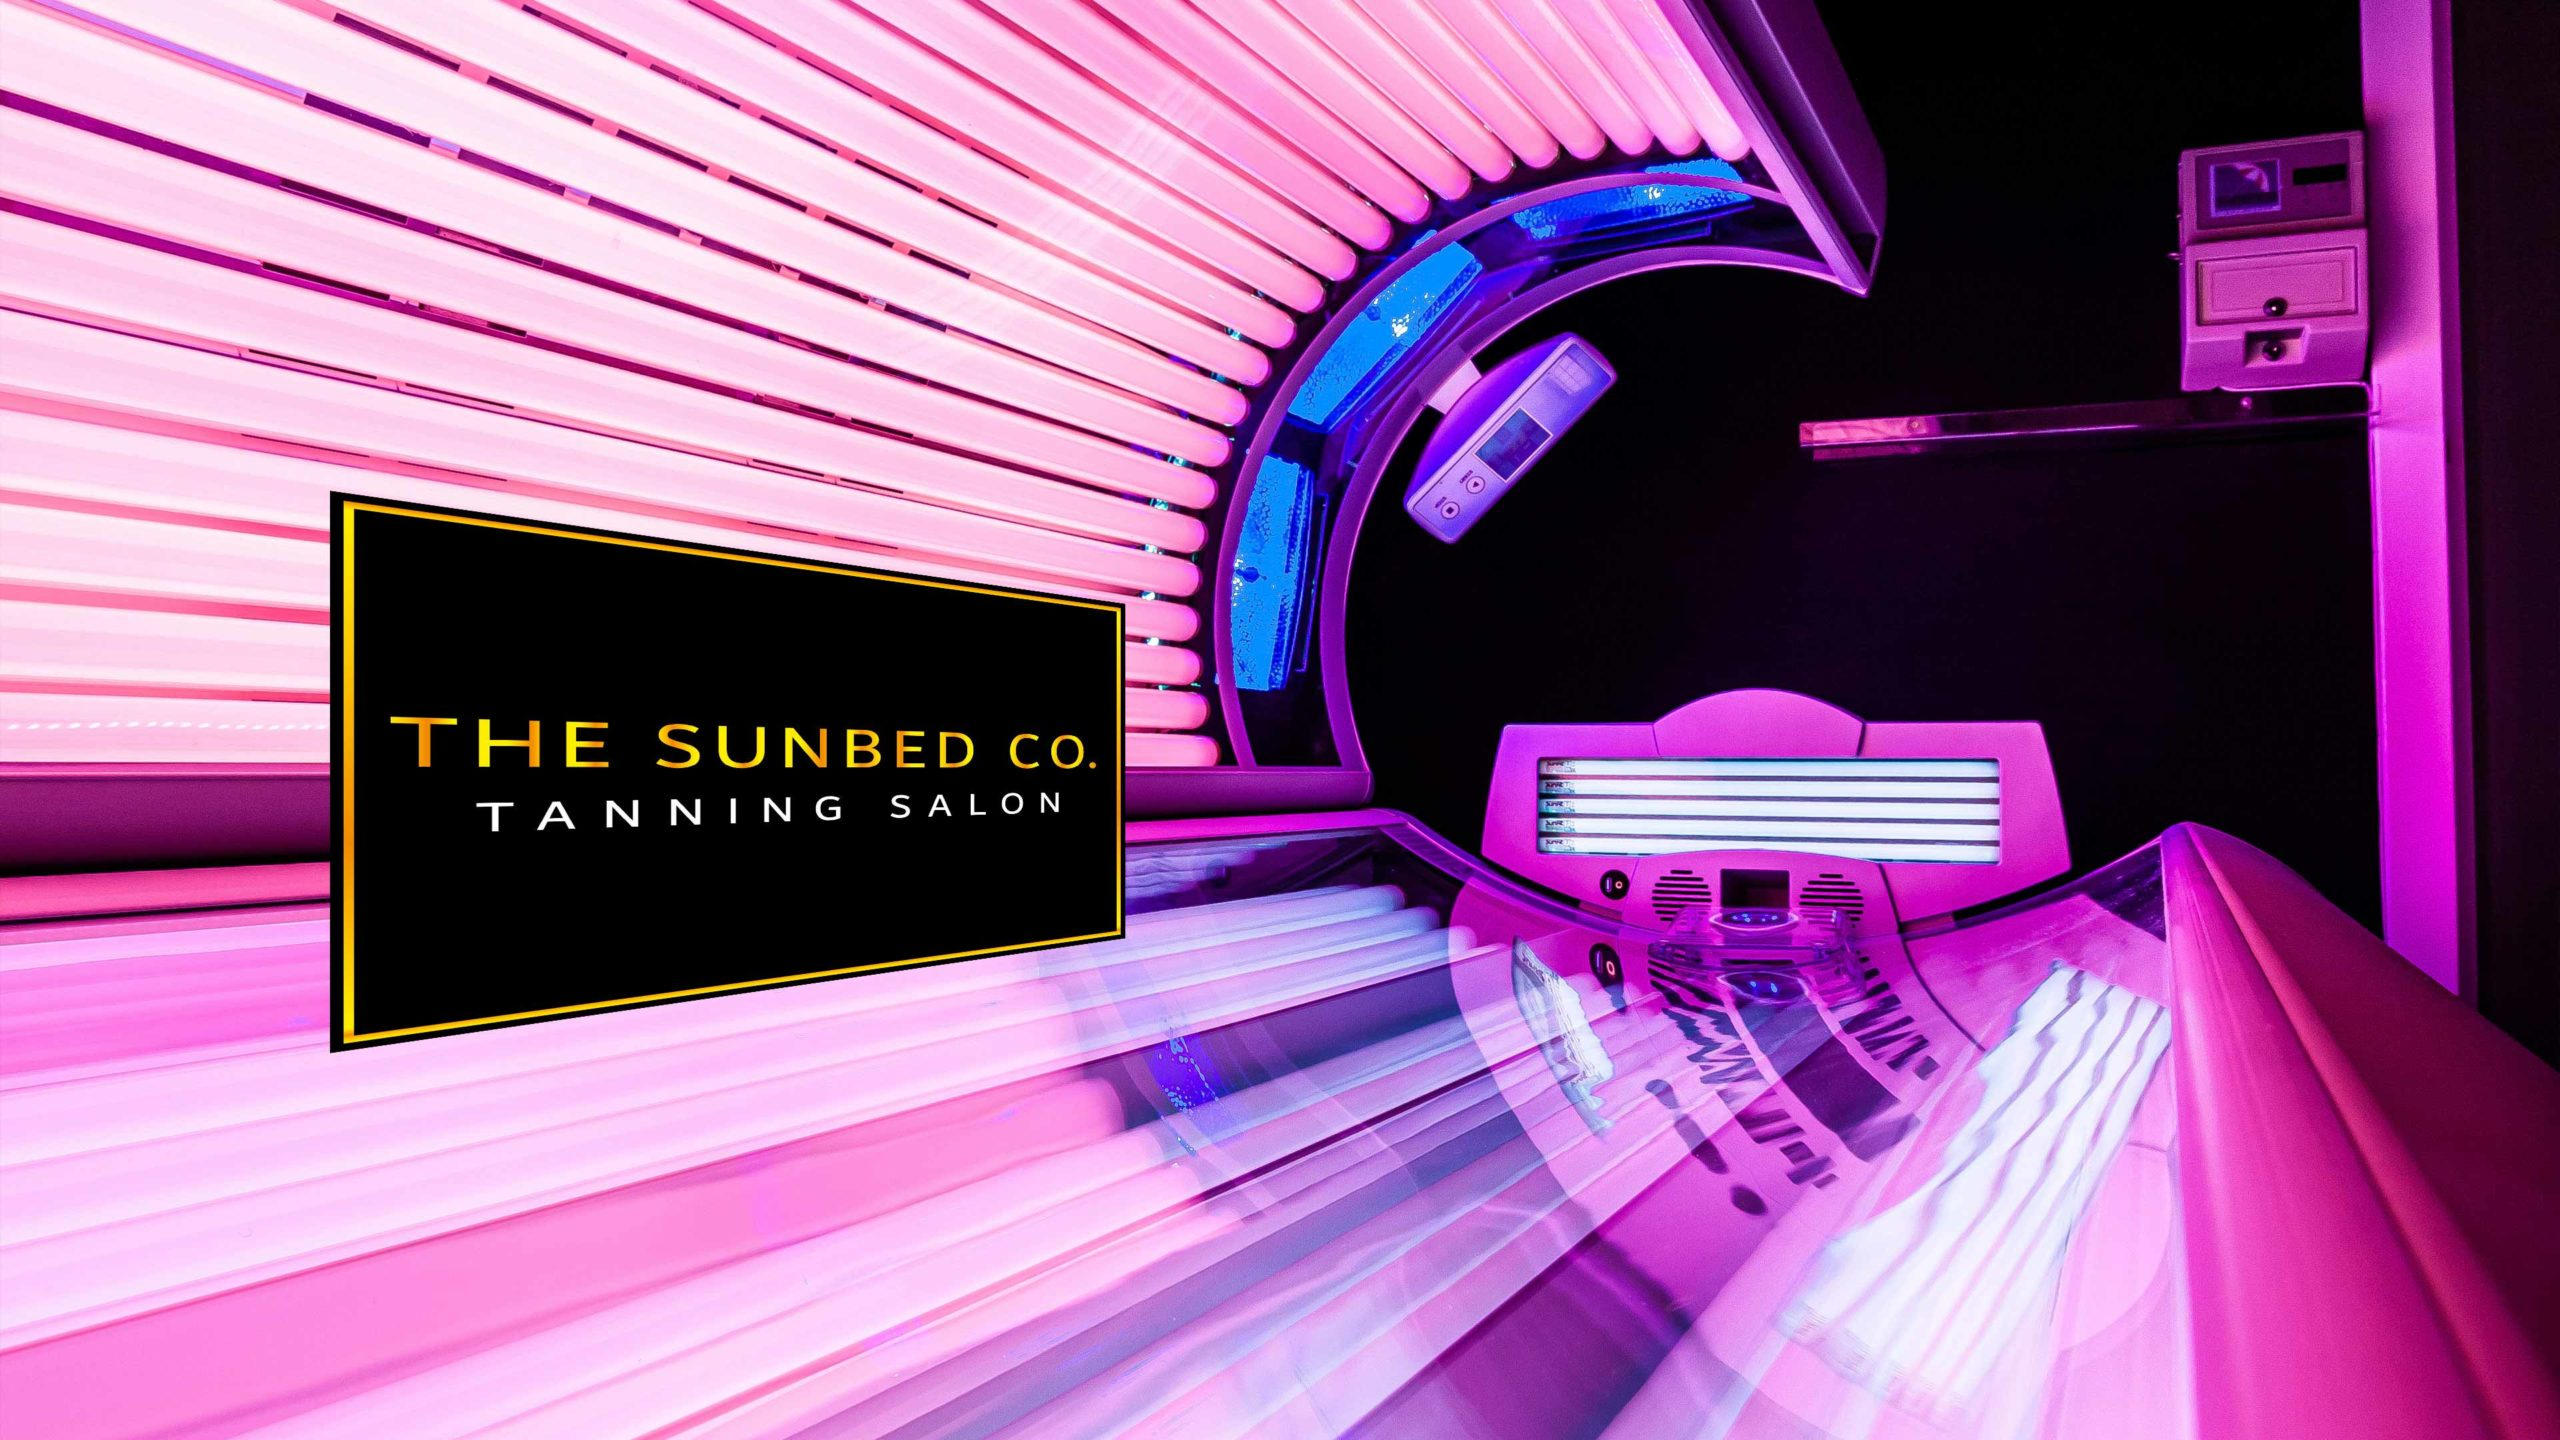 The Sunbed Co